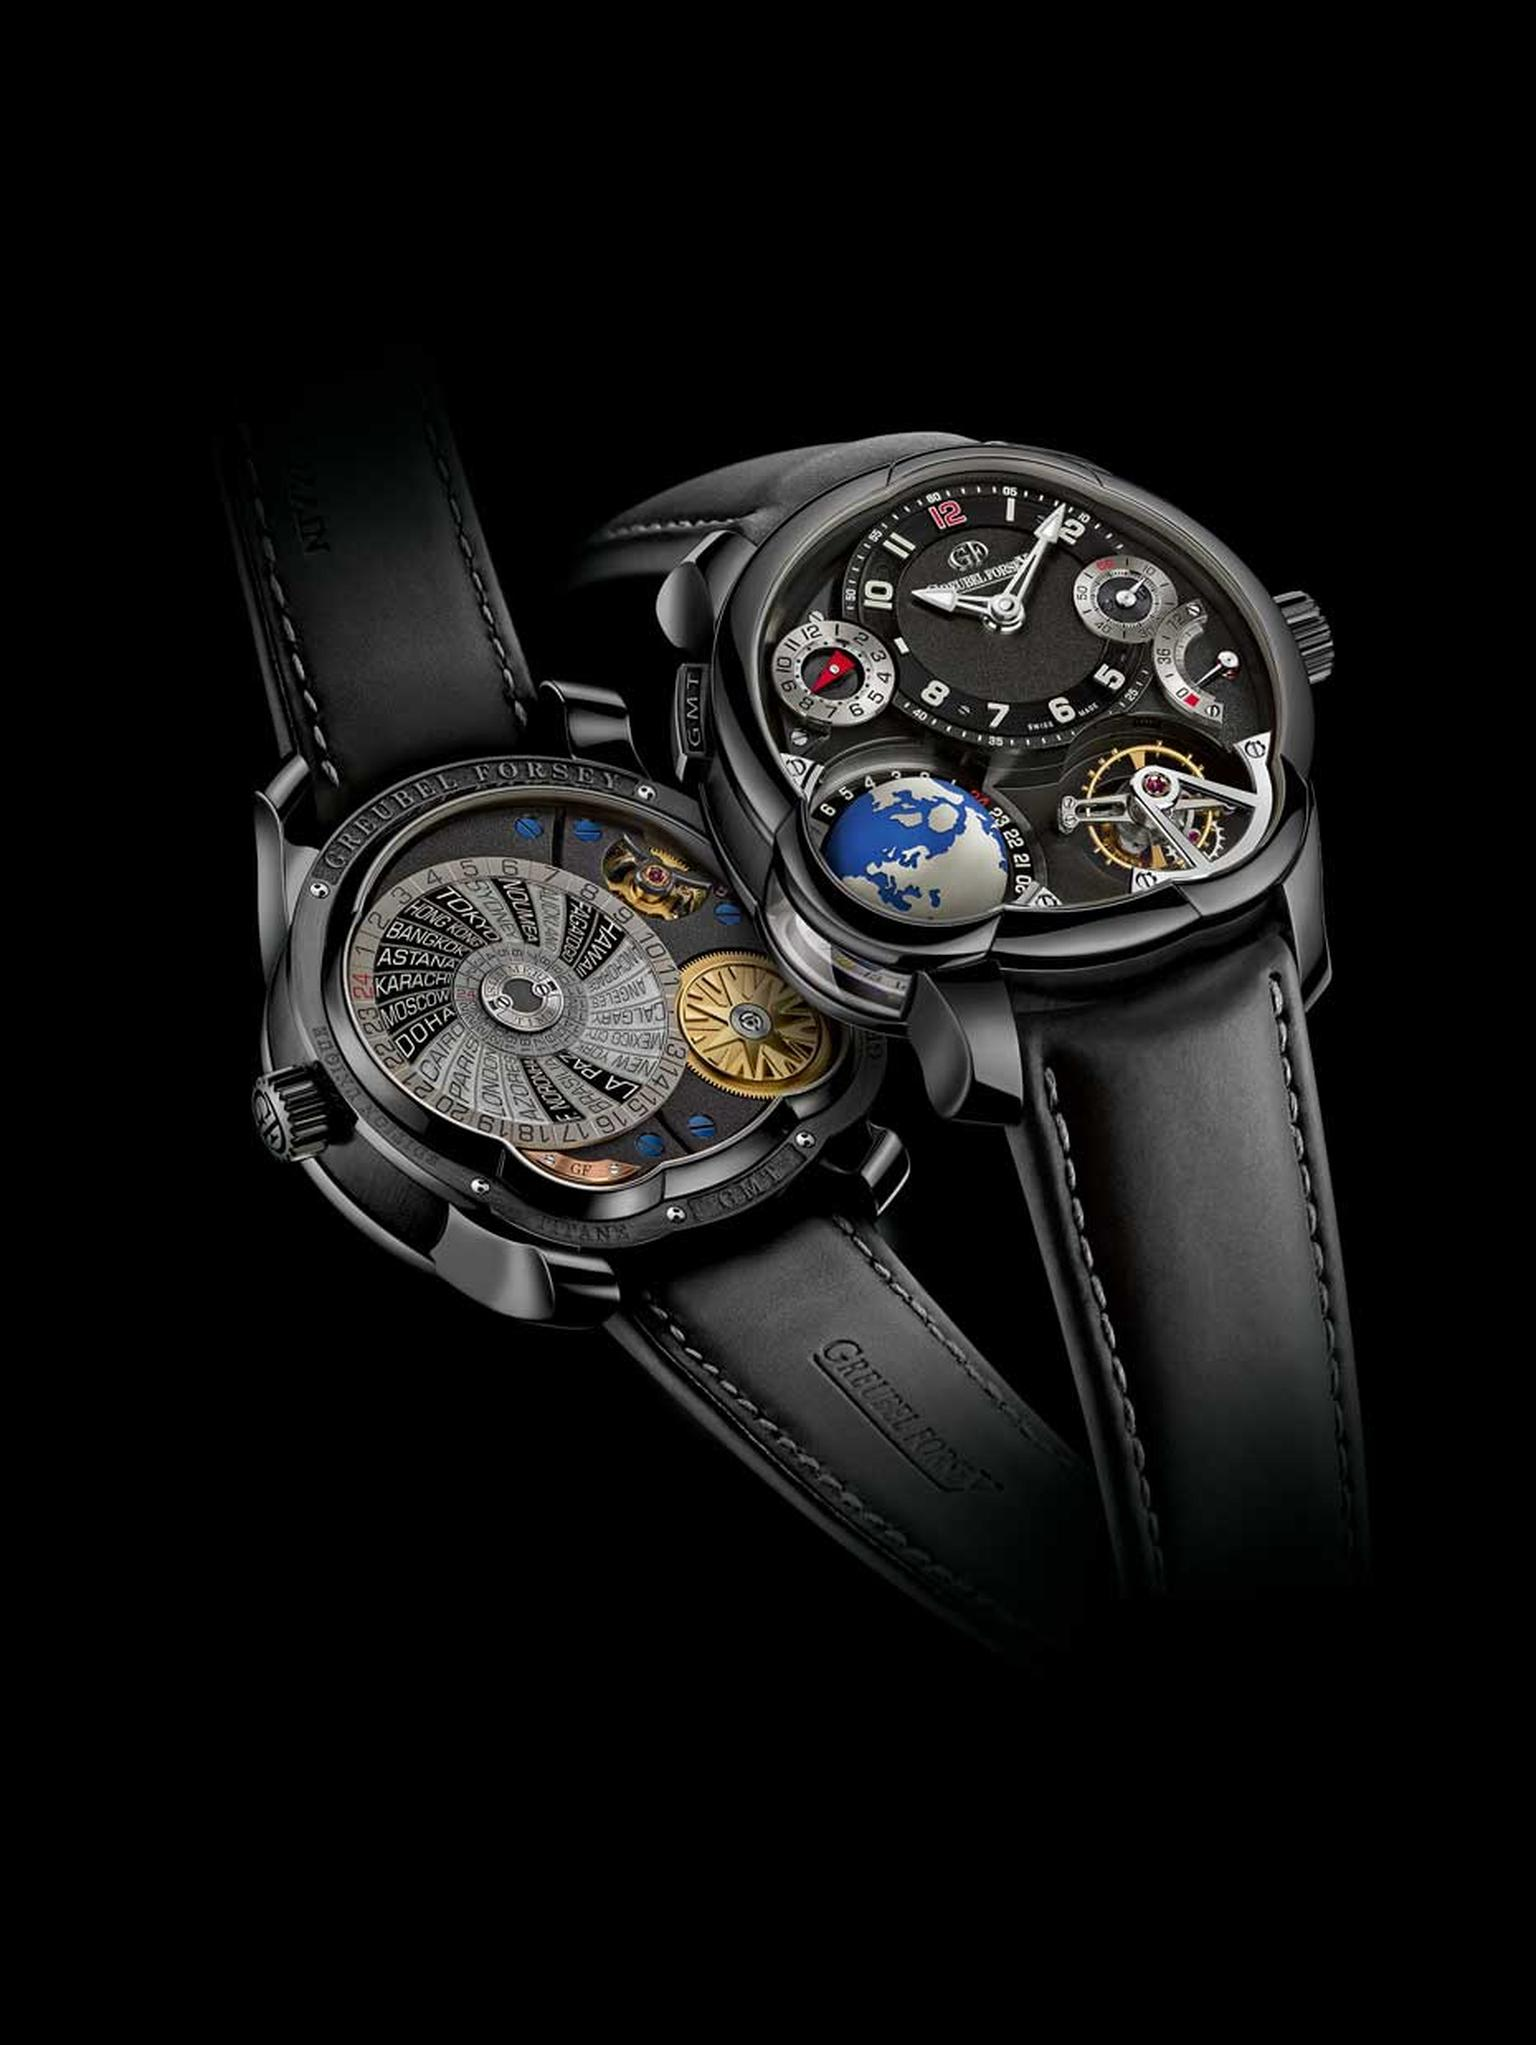 Greubel Forsey GMT watch with a rotating globe to display universal time, showing the time zones in 24 cities, day and night indicator, power reserve gauge, hour and minute display, summer time indicator and small seconds counter.